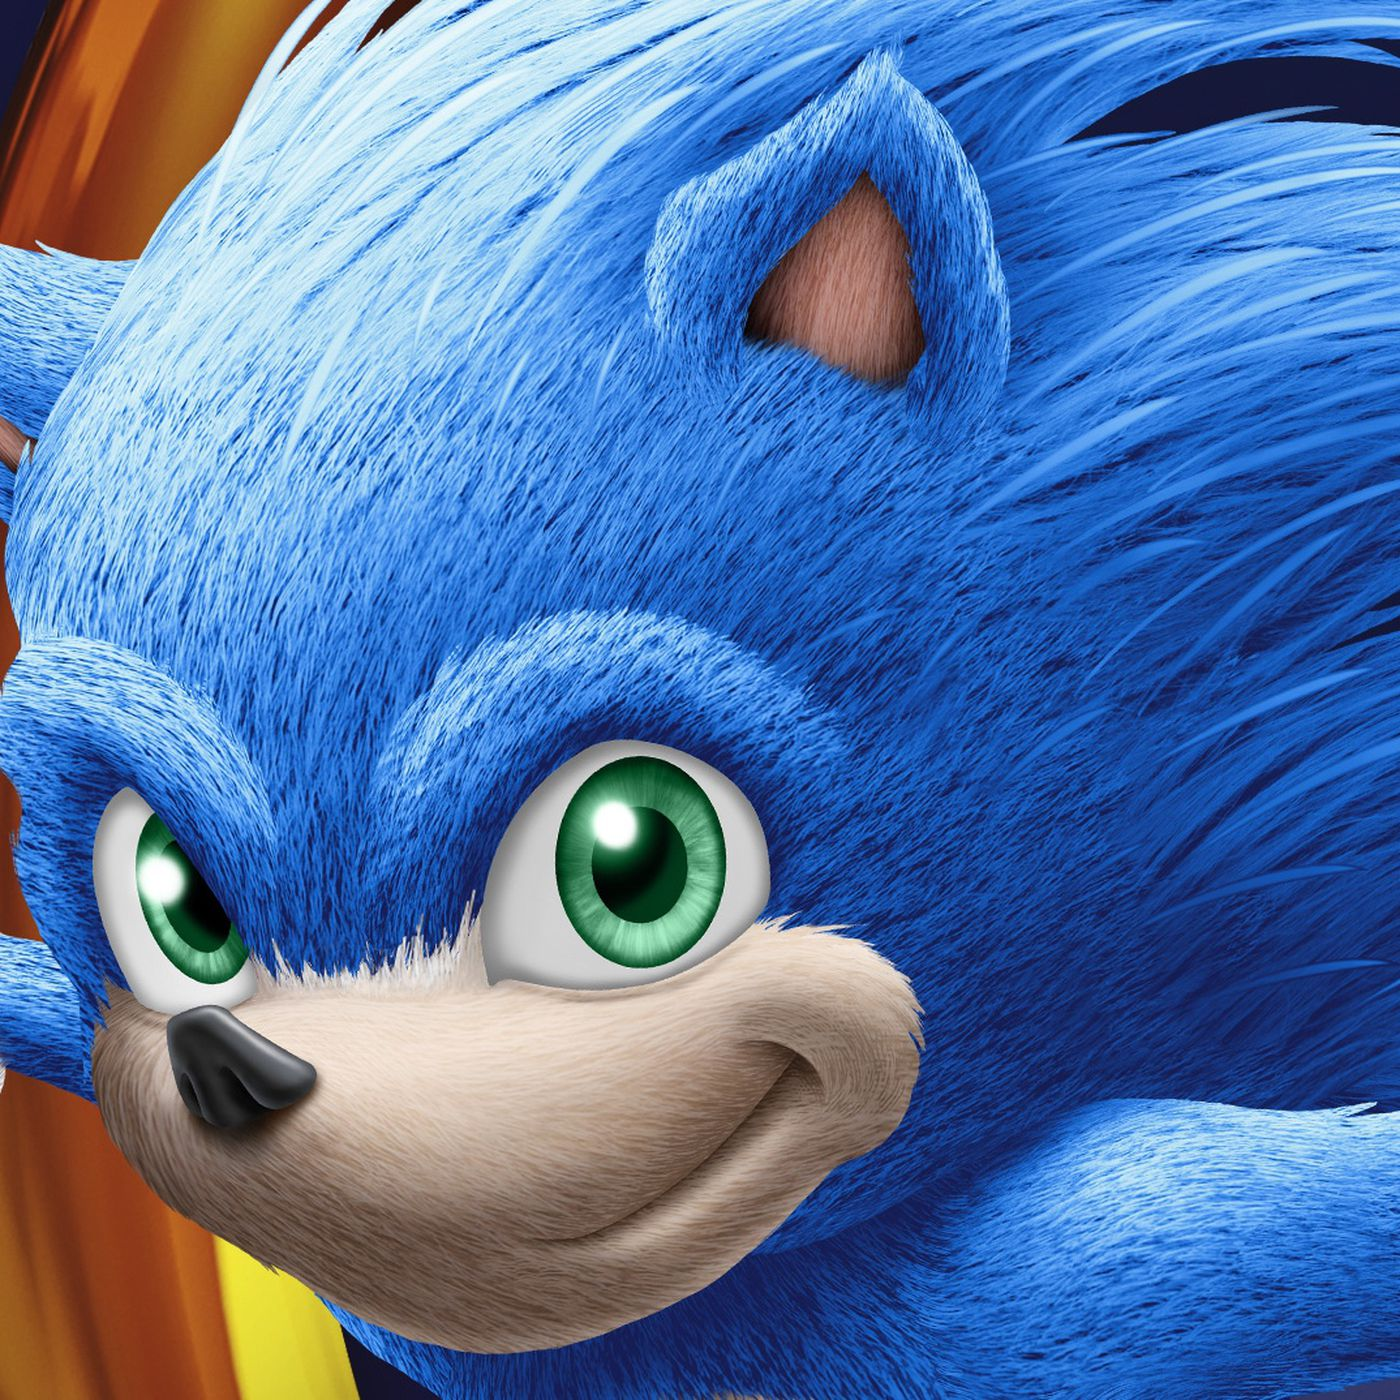 Here He Is Sonic The Hedgehog In Full Live Action Movie Form Polygon